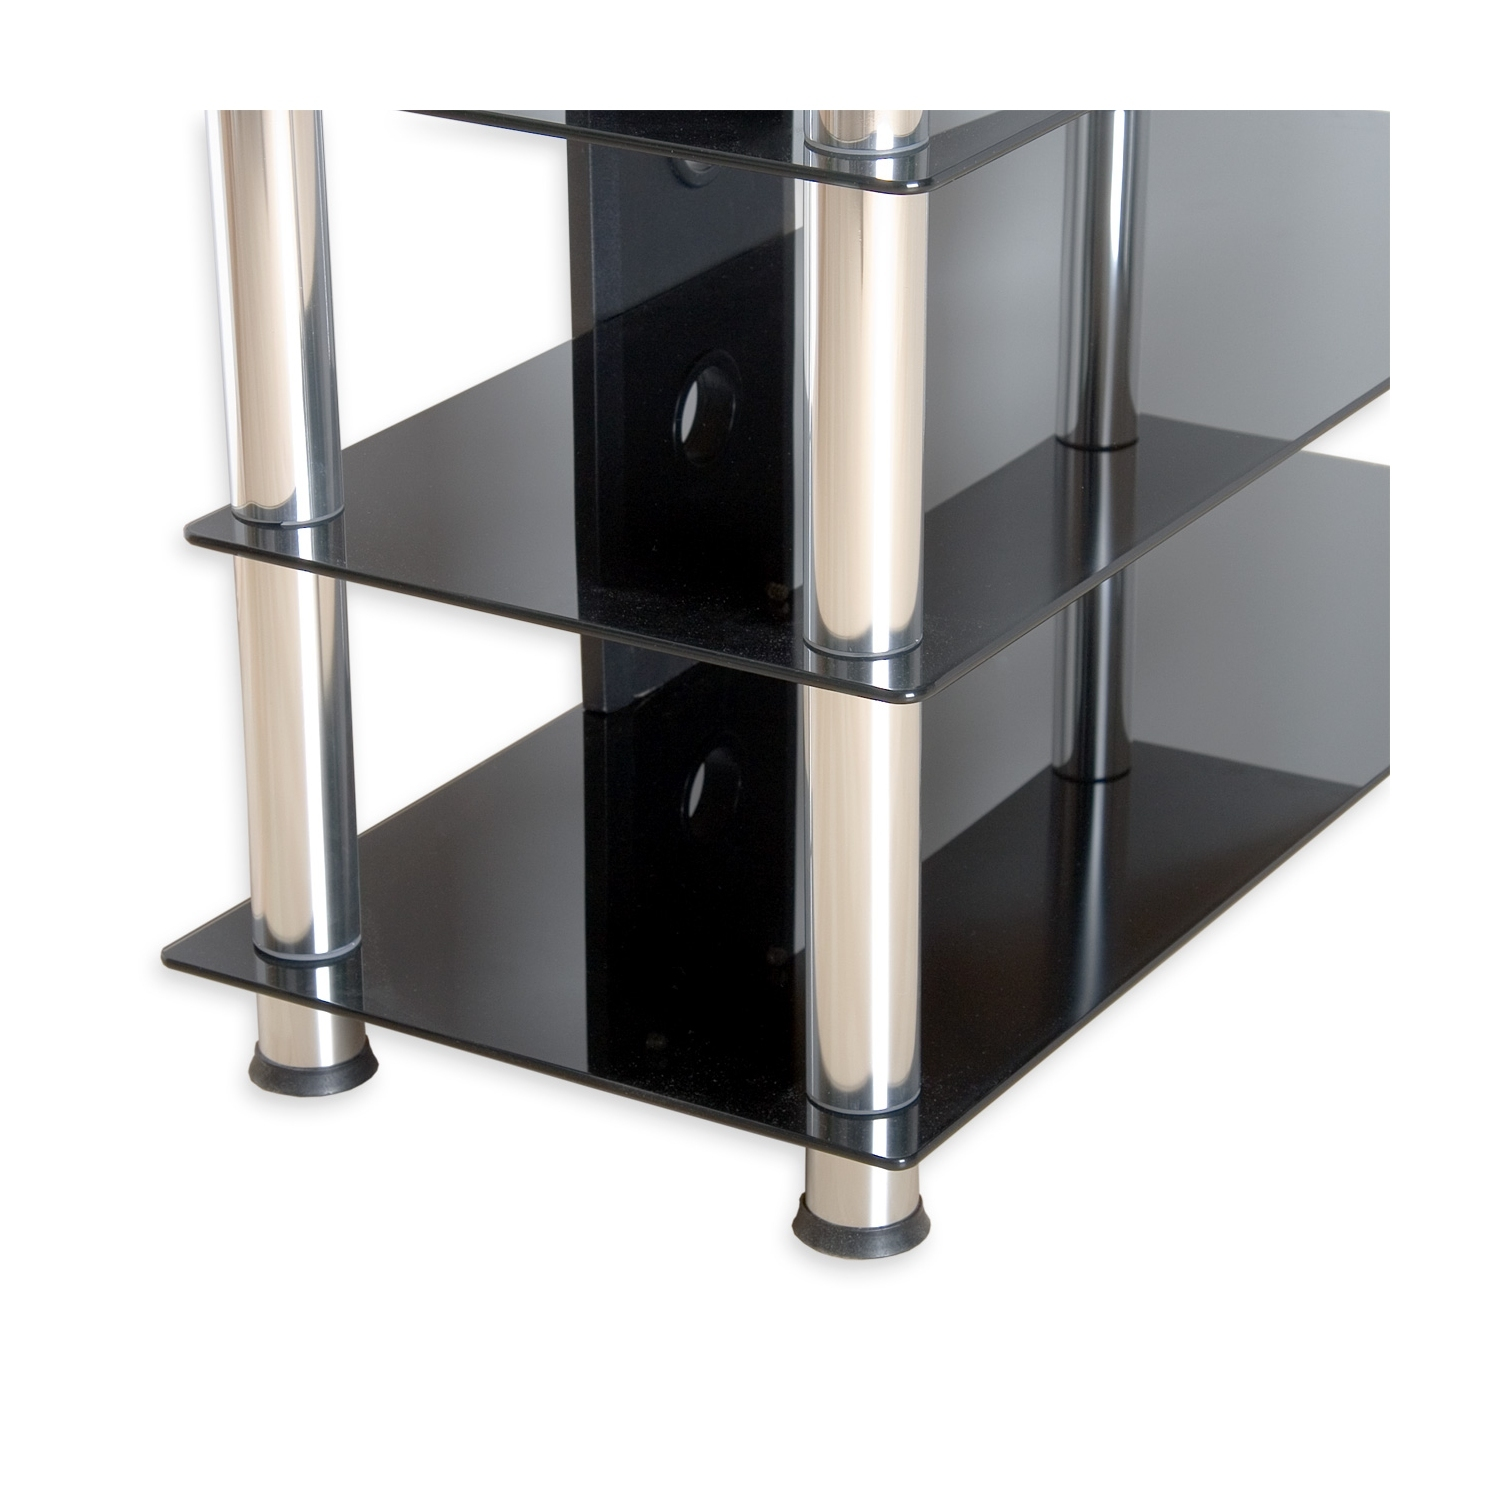 stilista tv rack wardrobe stand furniture shelf hifi audio glass black ebay